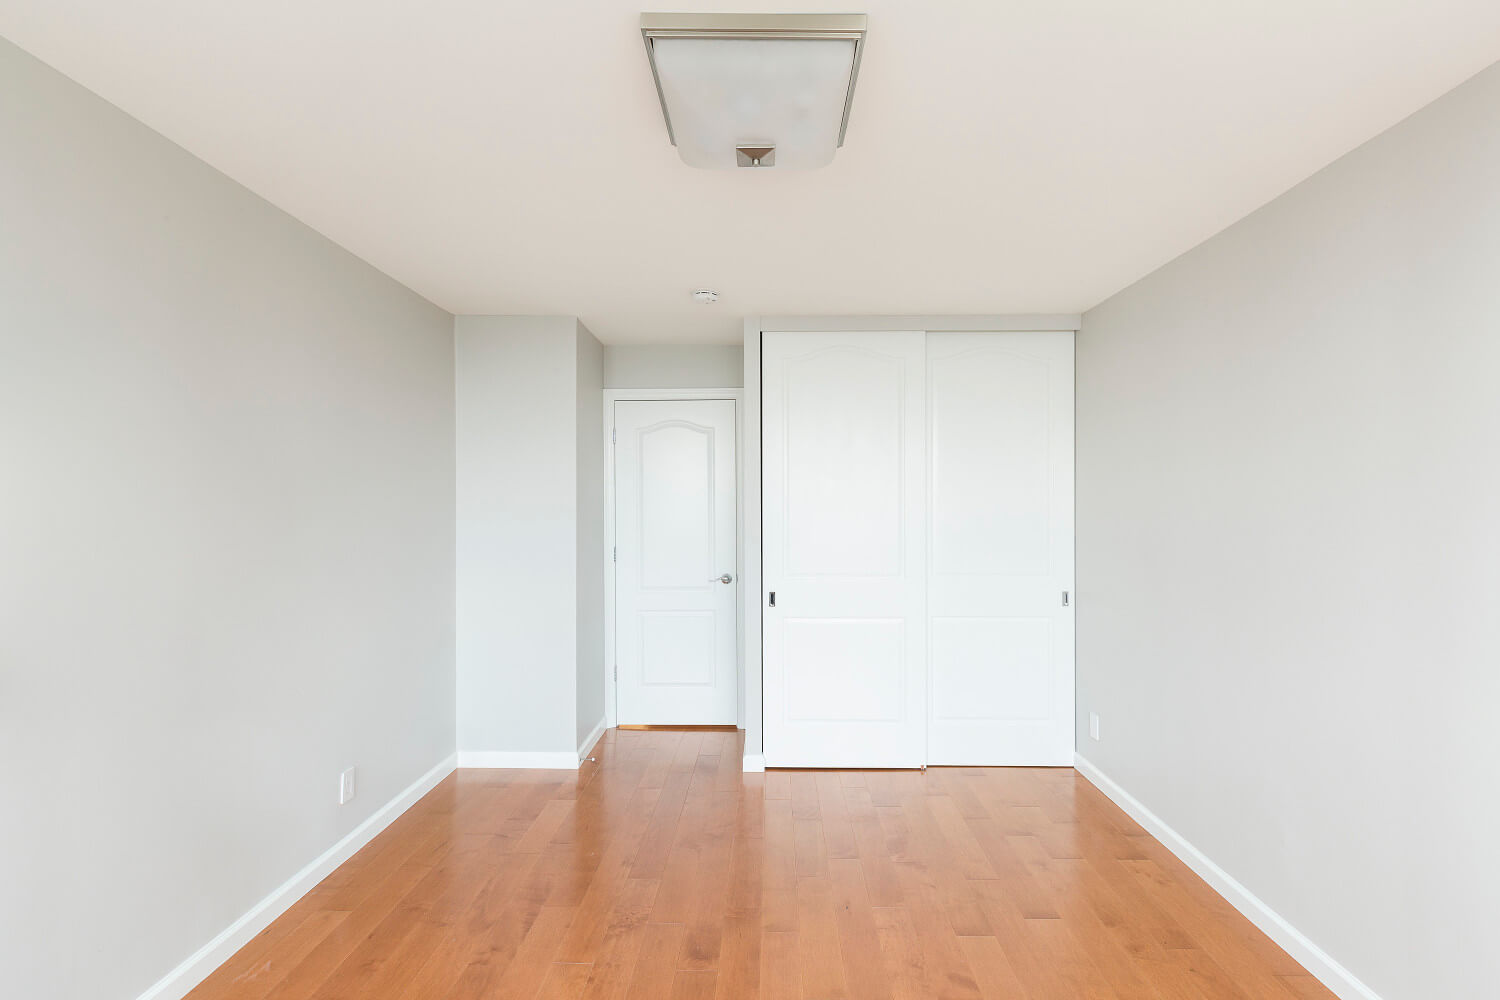 Image of completed Northern, NJ remodel